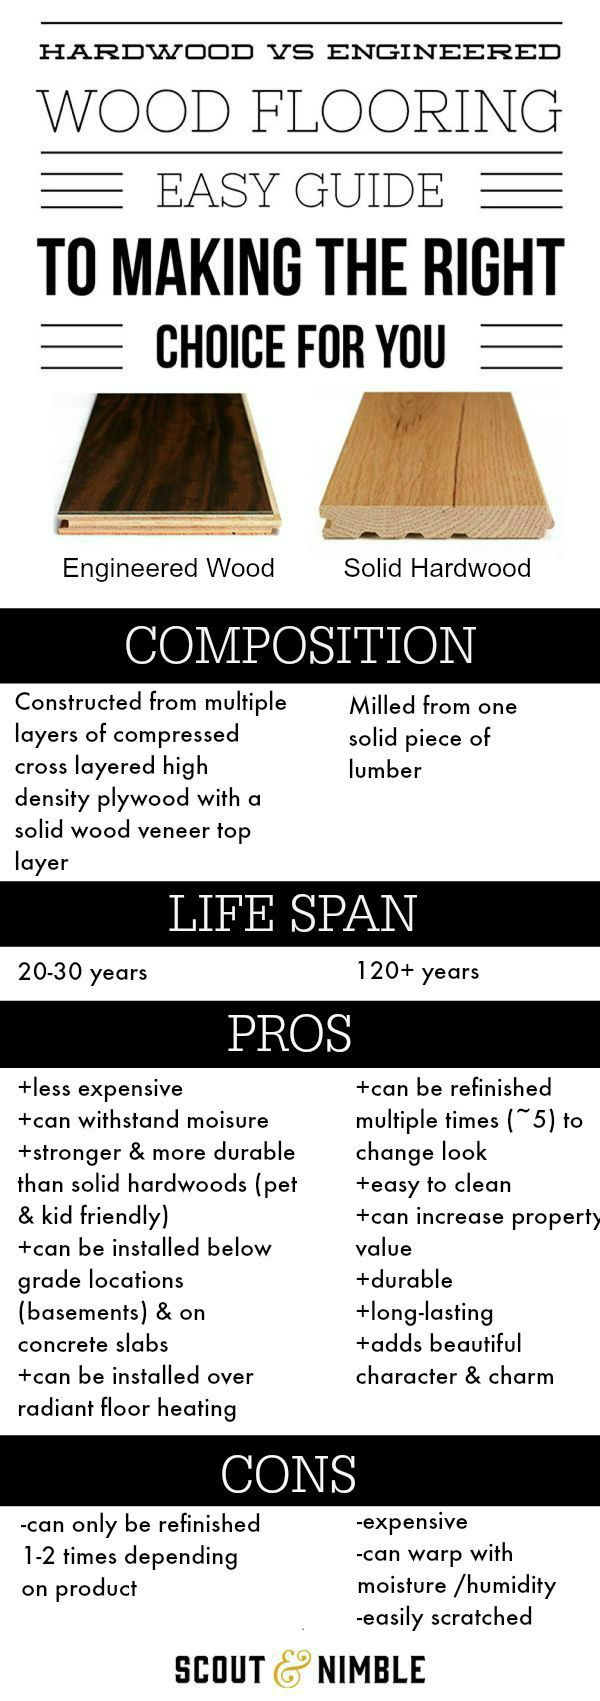 Engineered Wood Flooring Vs Hardwood wood flooring vs laminate inspiring ideas laminate flooring vs hardwood flooring pictures to pin on pinterest Solid Vs Engineered Wood Flooring Infographic Comparison Easy Guide To Decide Which Is Right